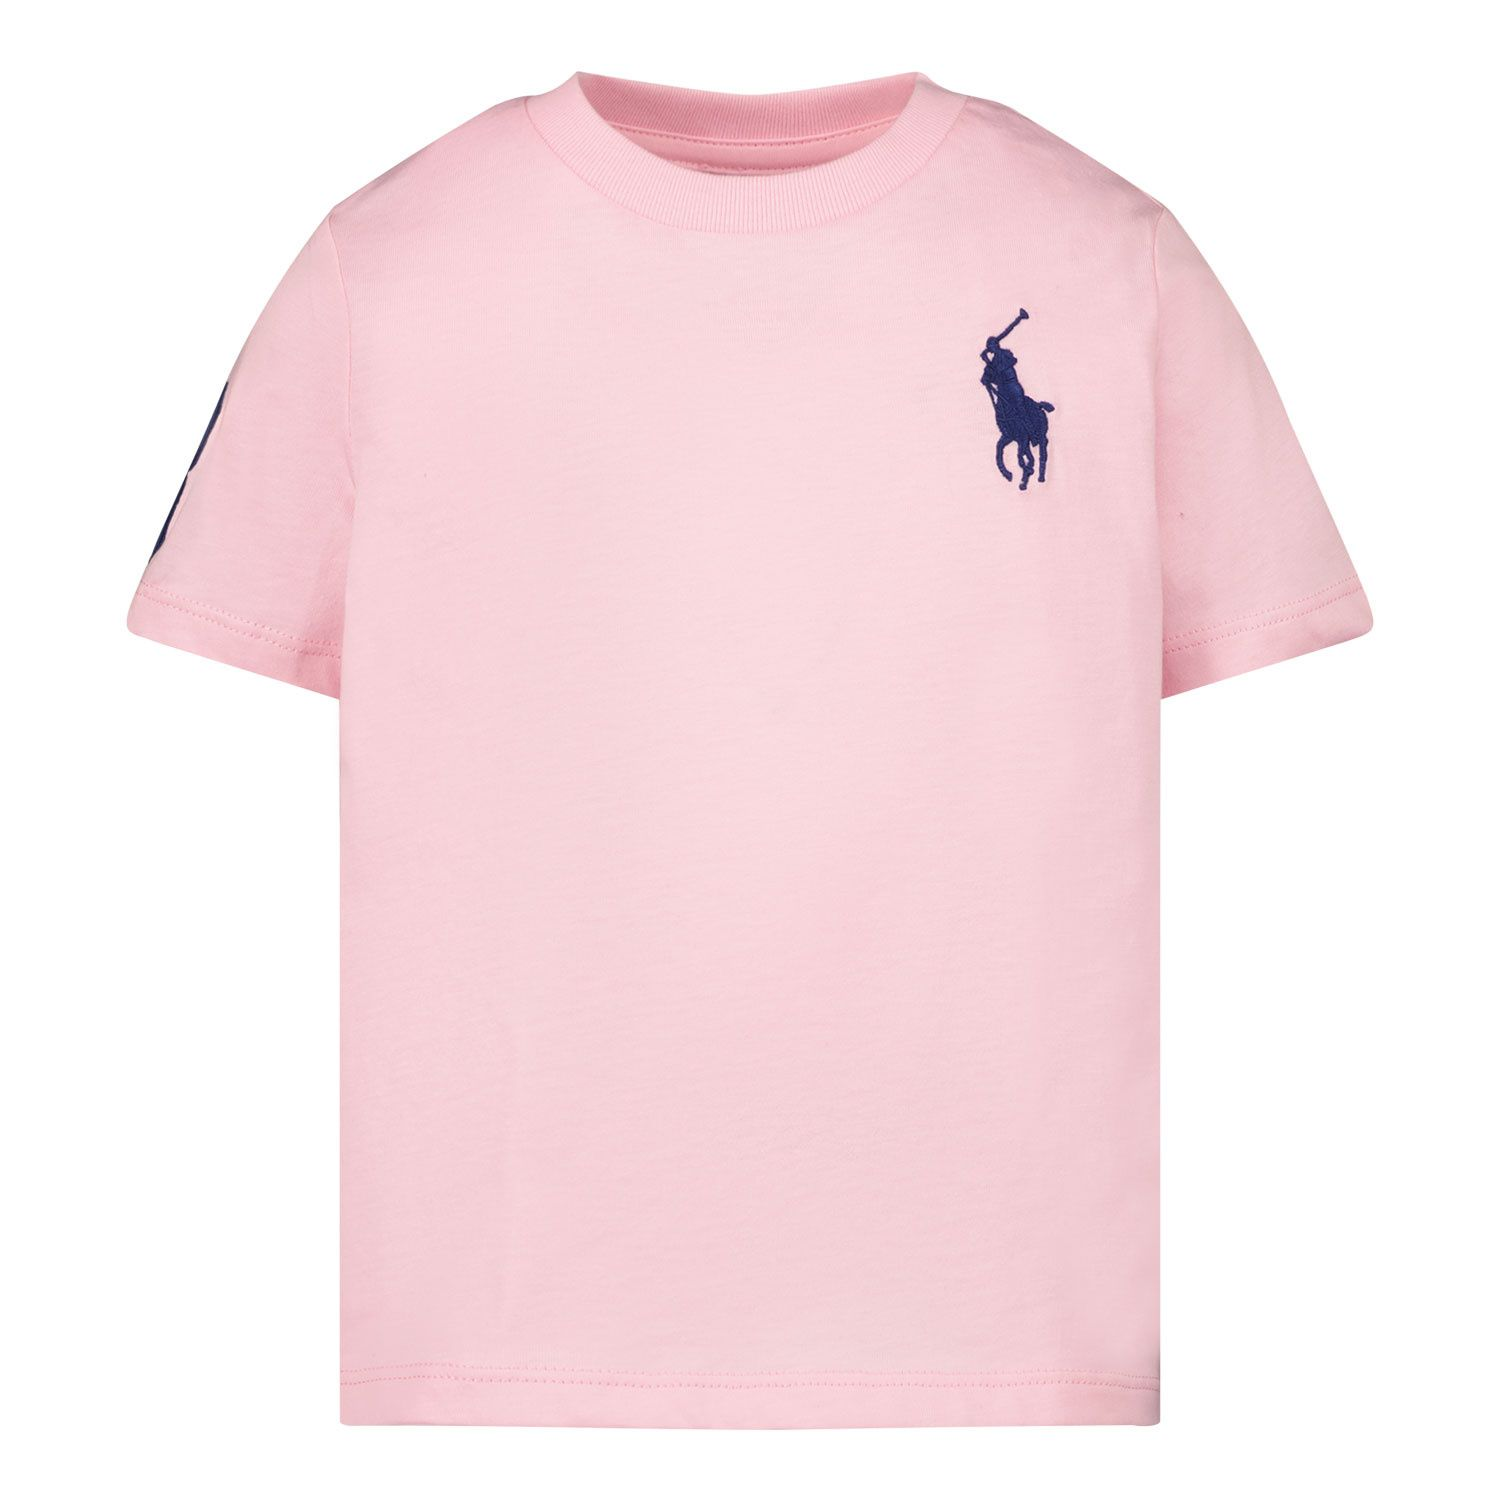 Picture of Ralph Lauren 320832907 baby shirt pink